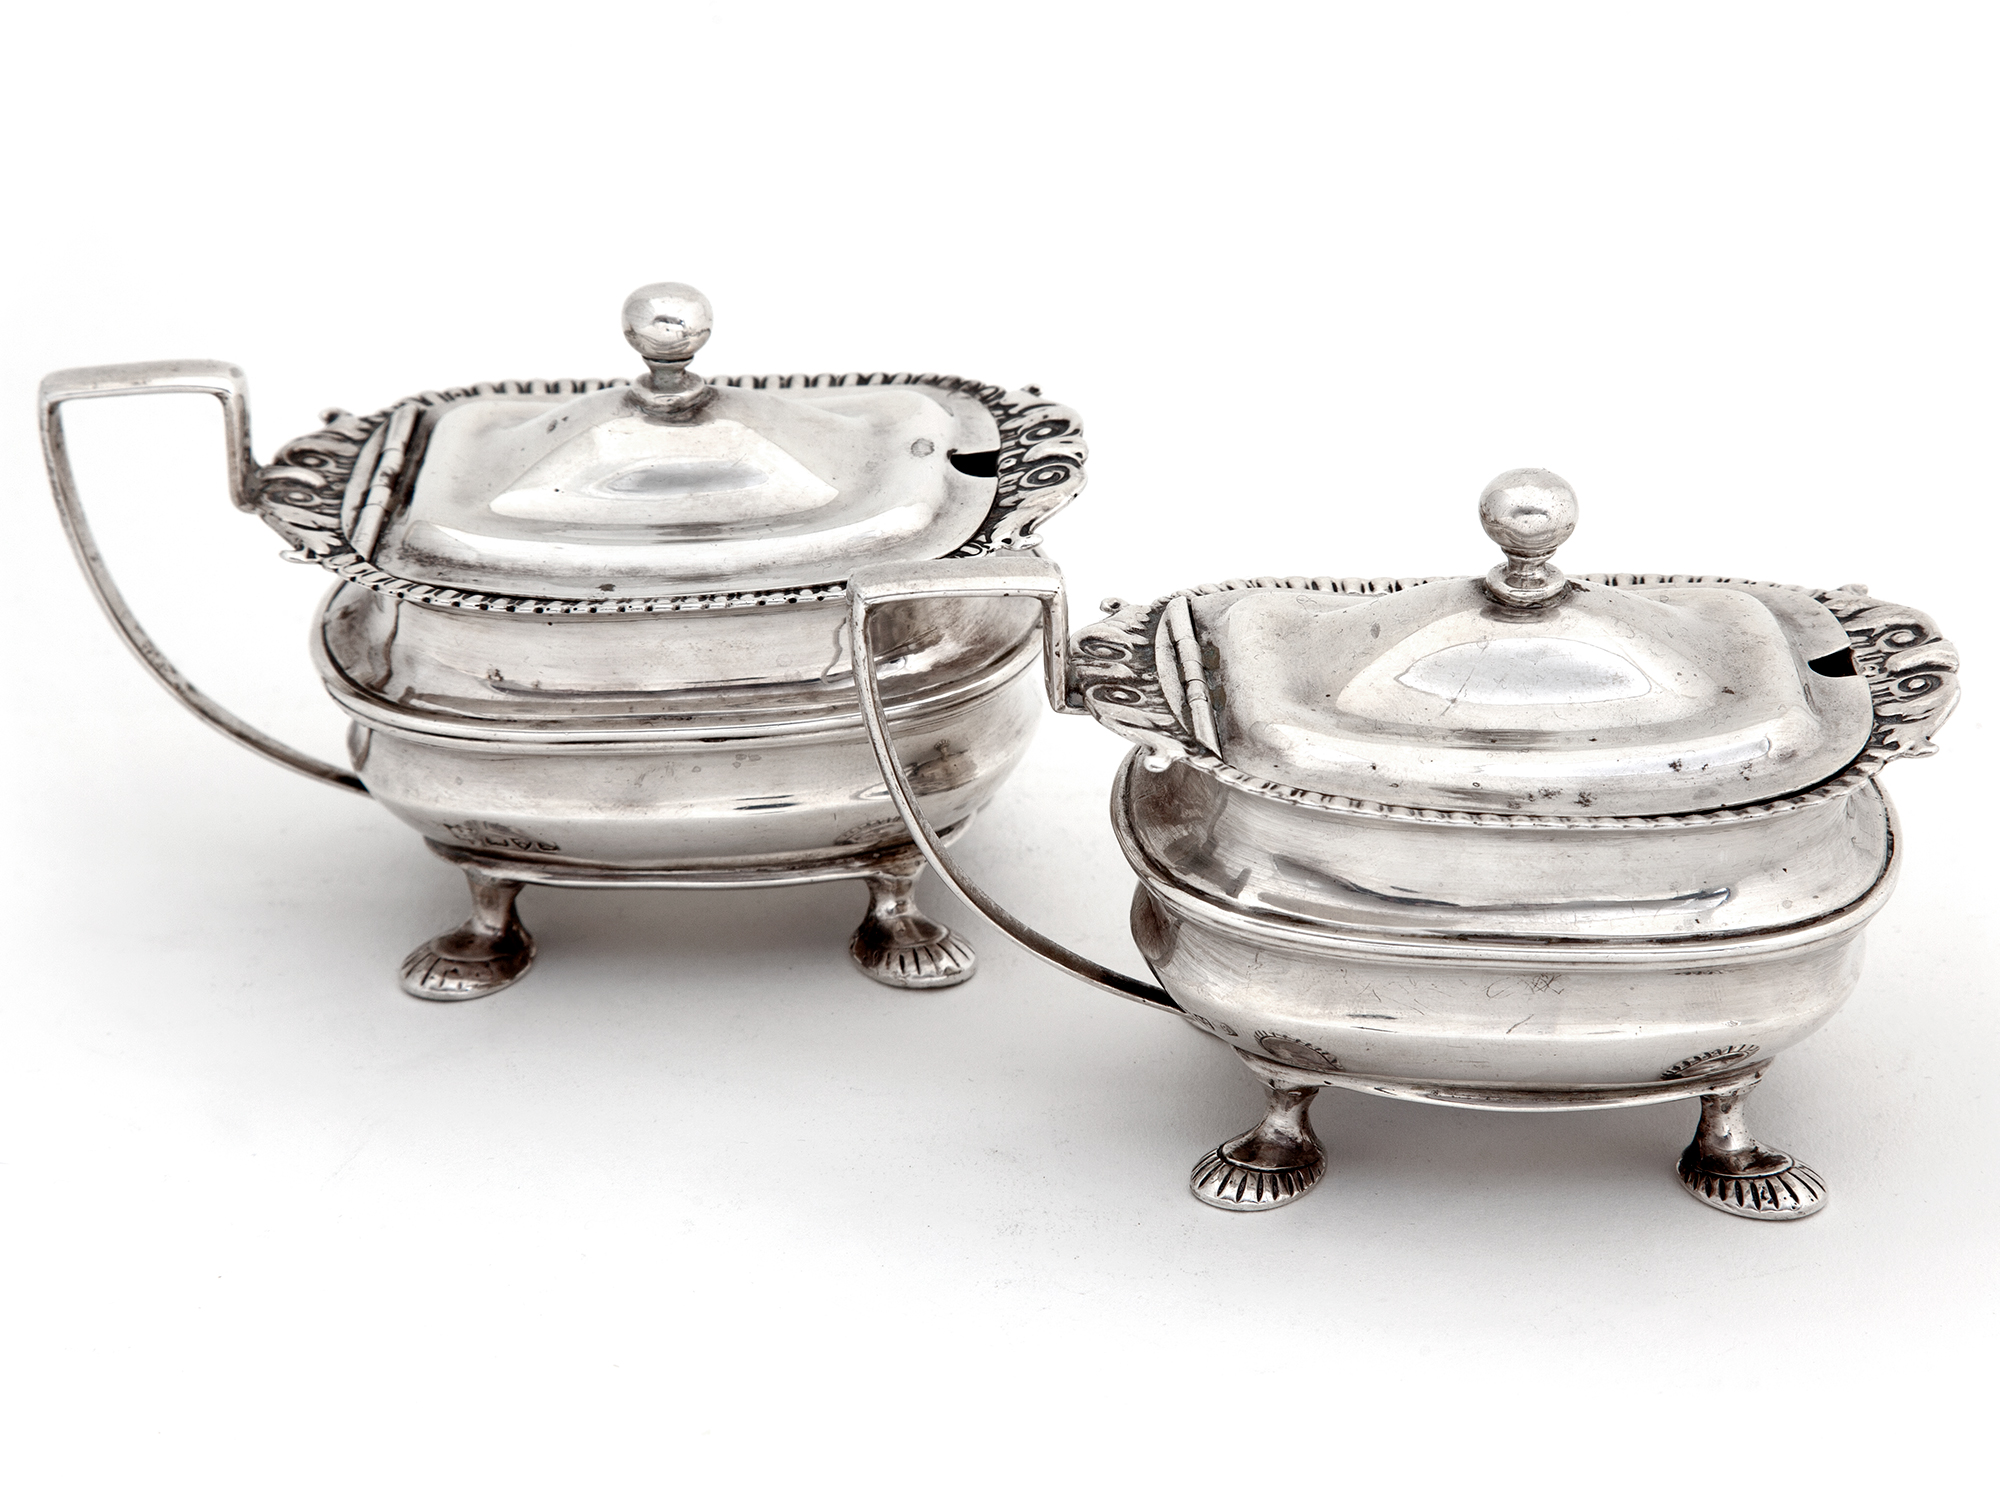 Piers Rankin Silver Antiques image (11 of 11)